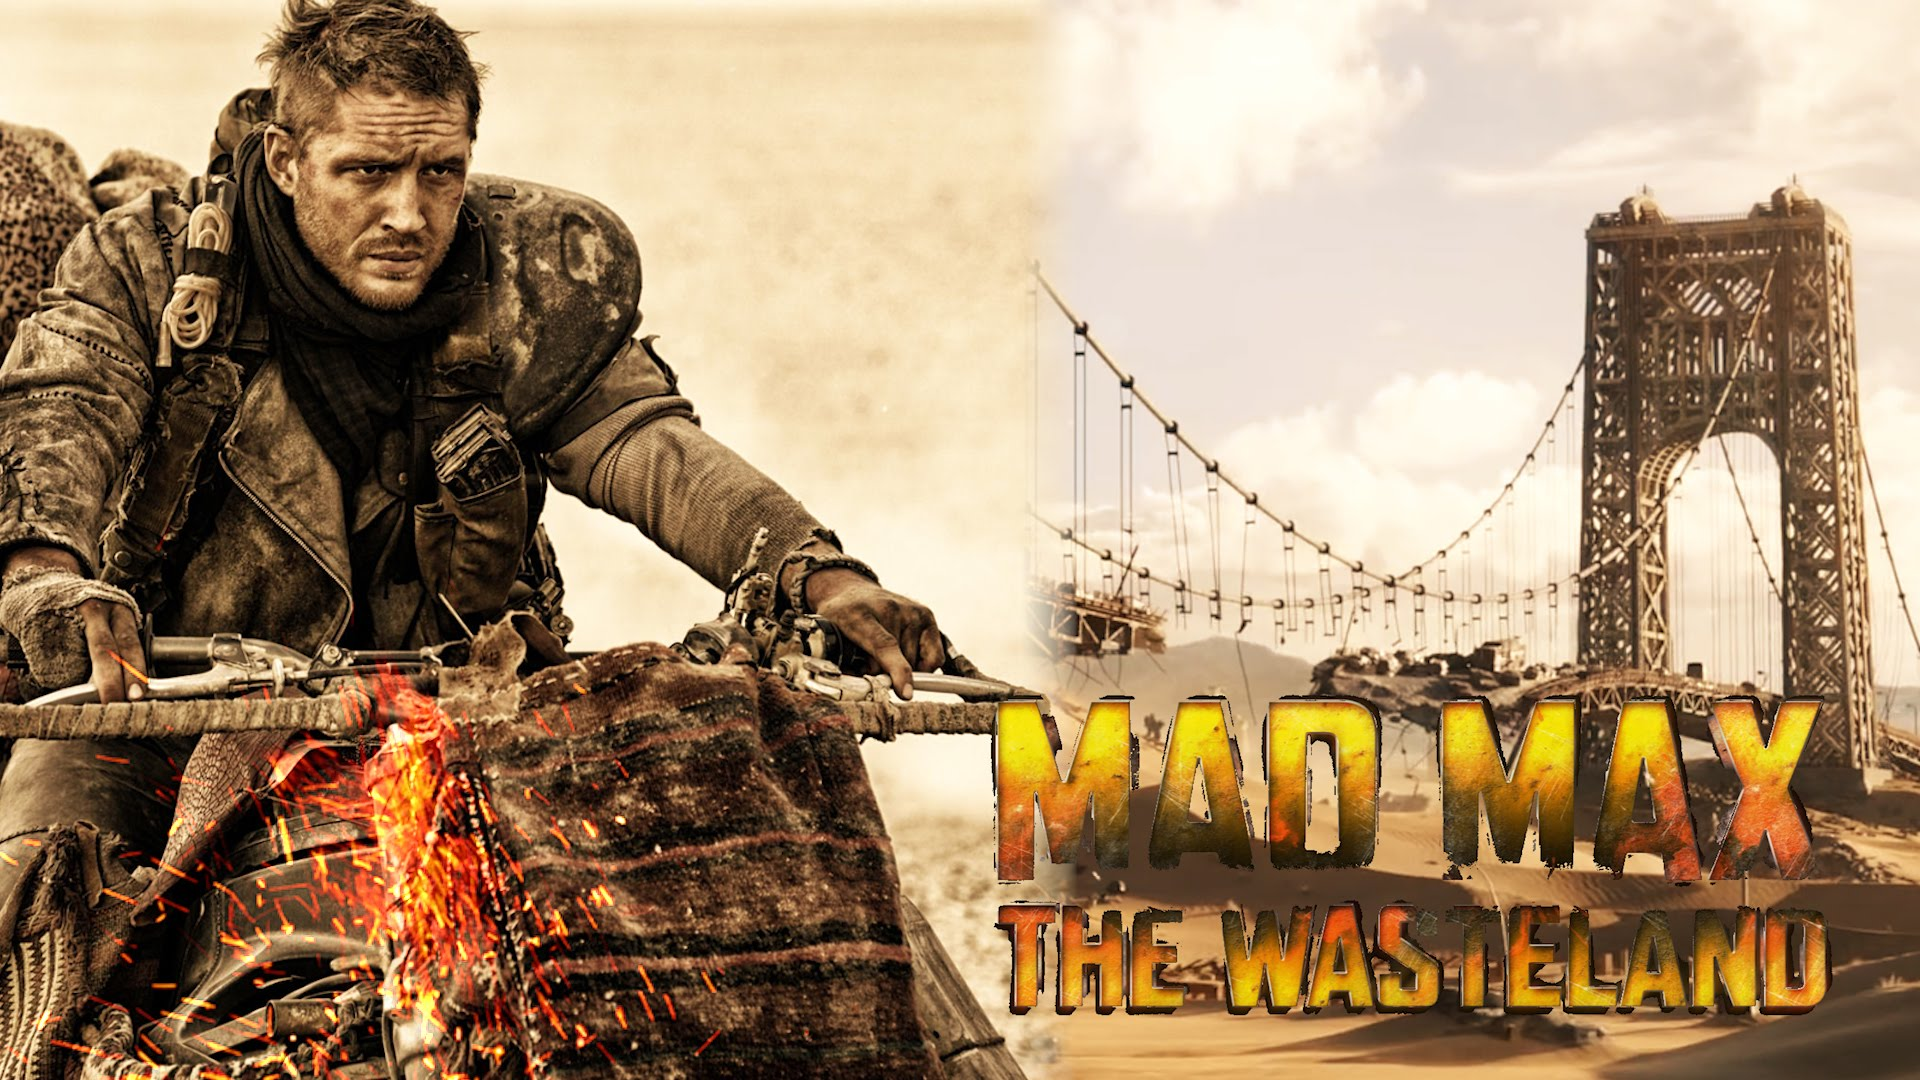 Mad Max: The Wasteland Trailer - Mad Max: Fury Road Sequel (FanMade)